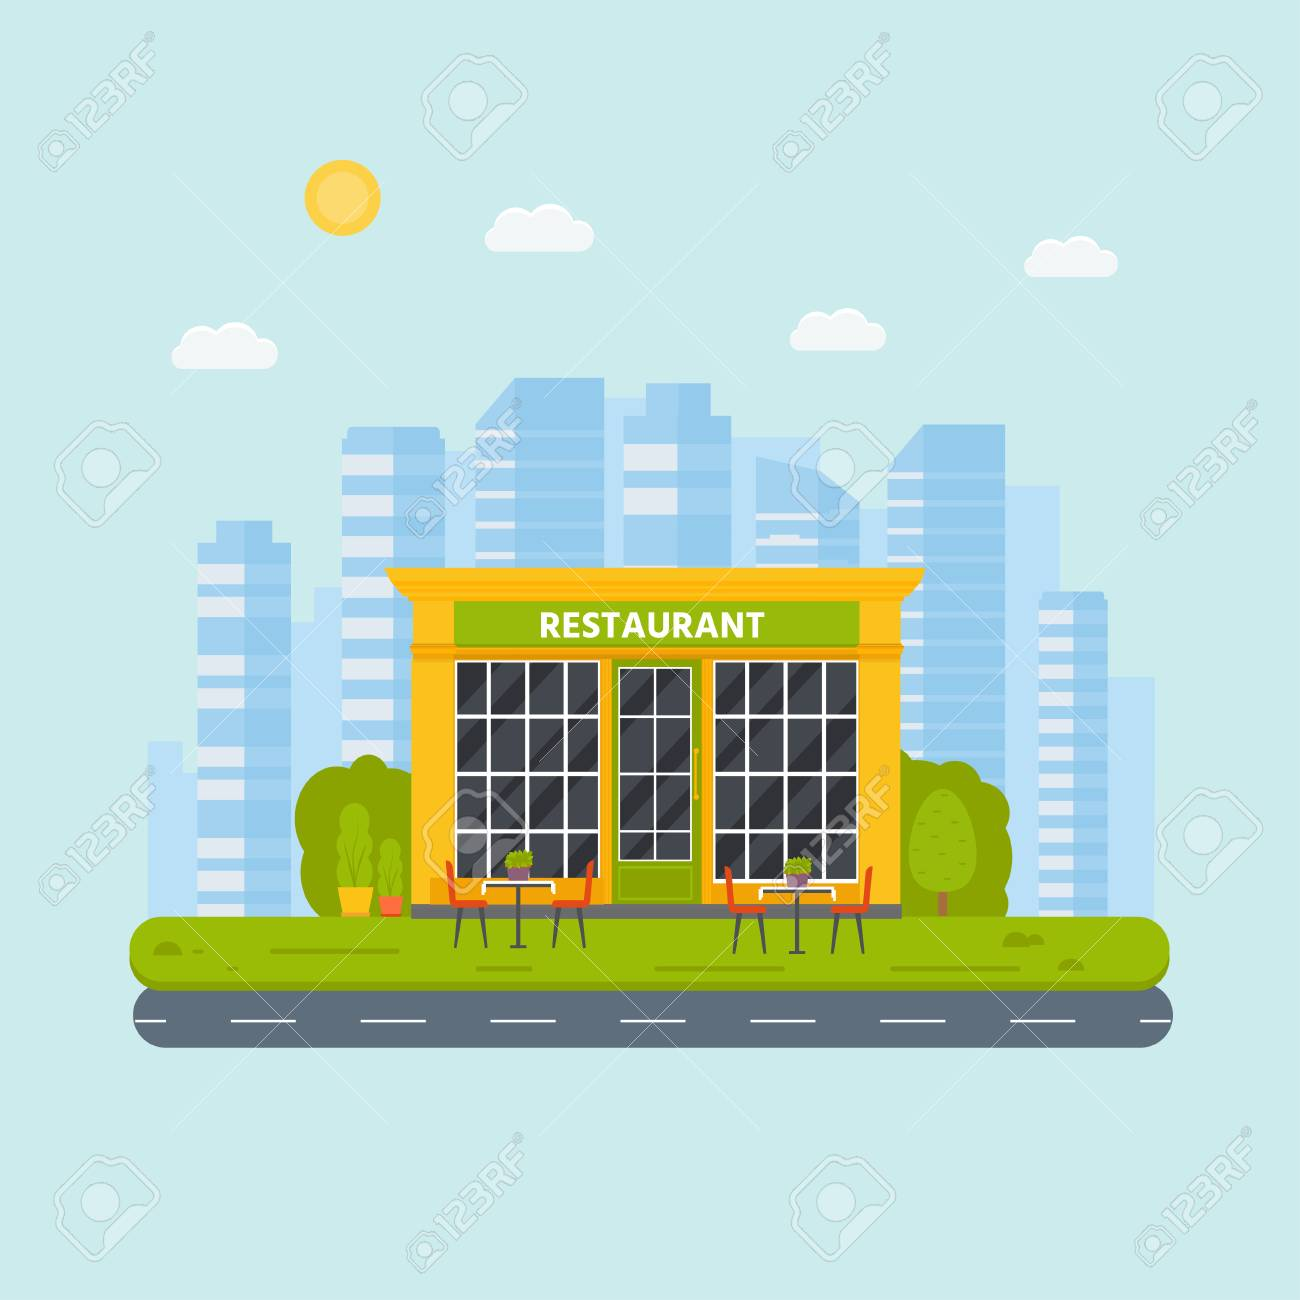 Vector Flat Design Restaurant Exterior Shop Facade Store Front Royalty Free Cliparts Vectors And Stock Illustration Image 104789834